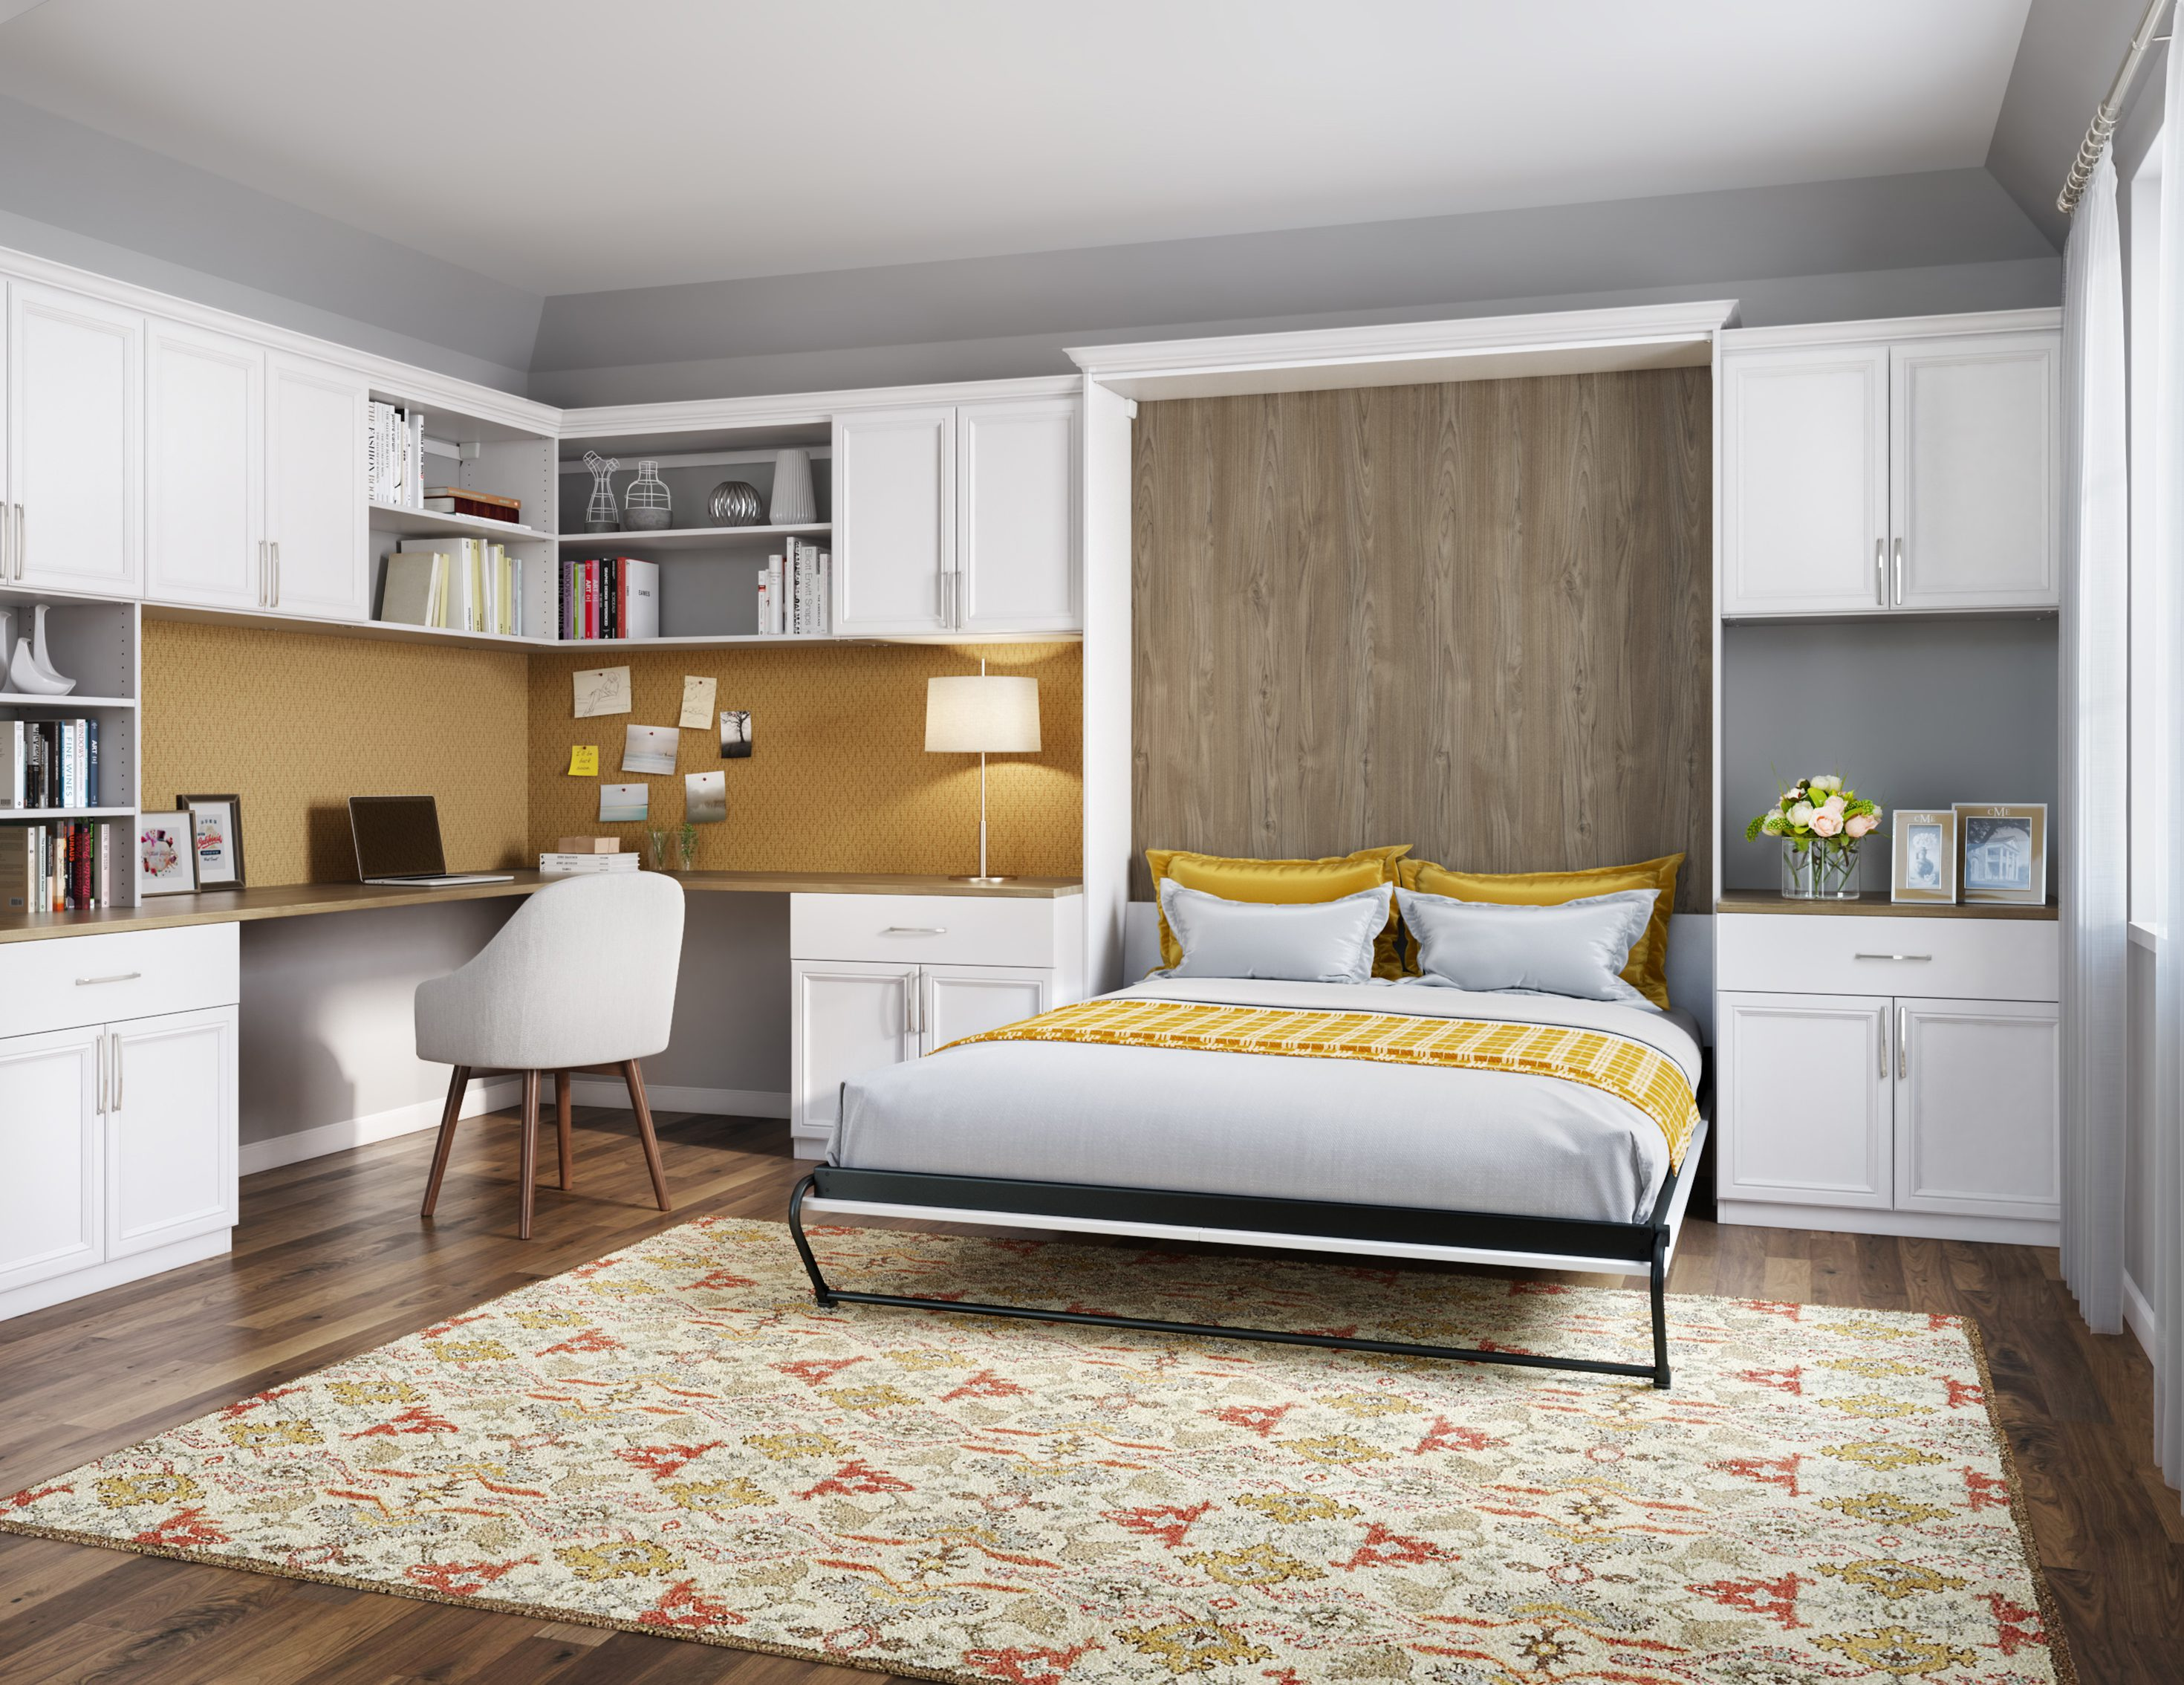 Picture of: Modern Wall Beds Custom Built Wall Beds By California Closets